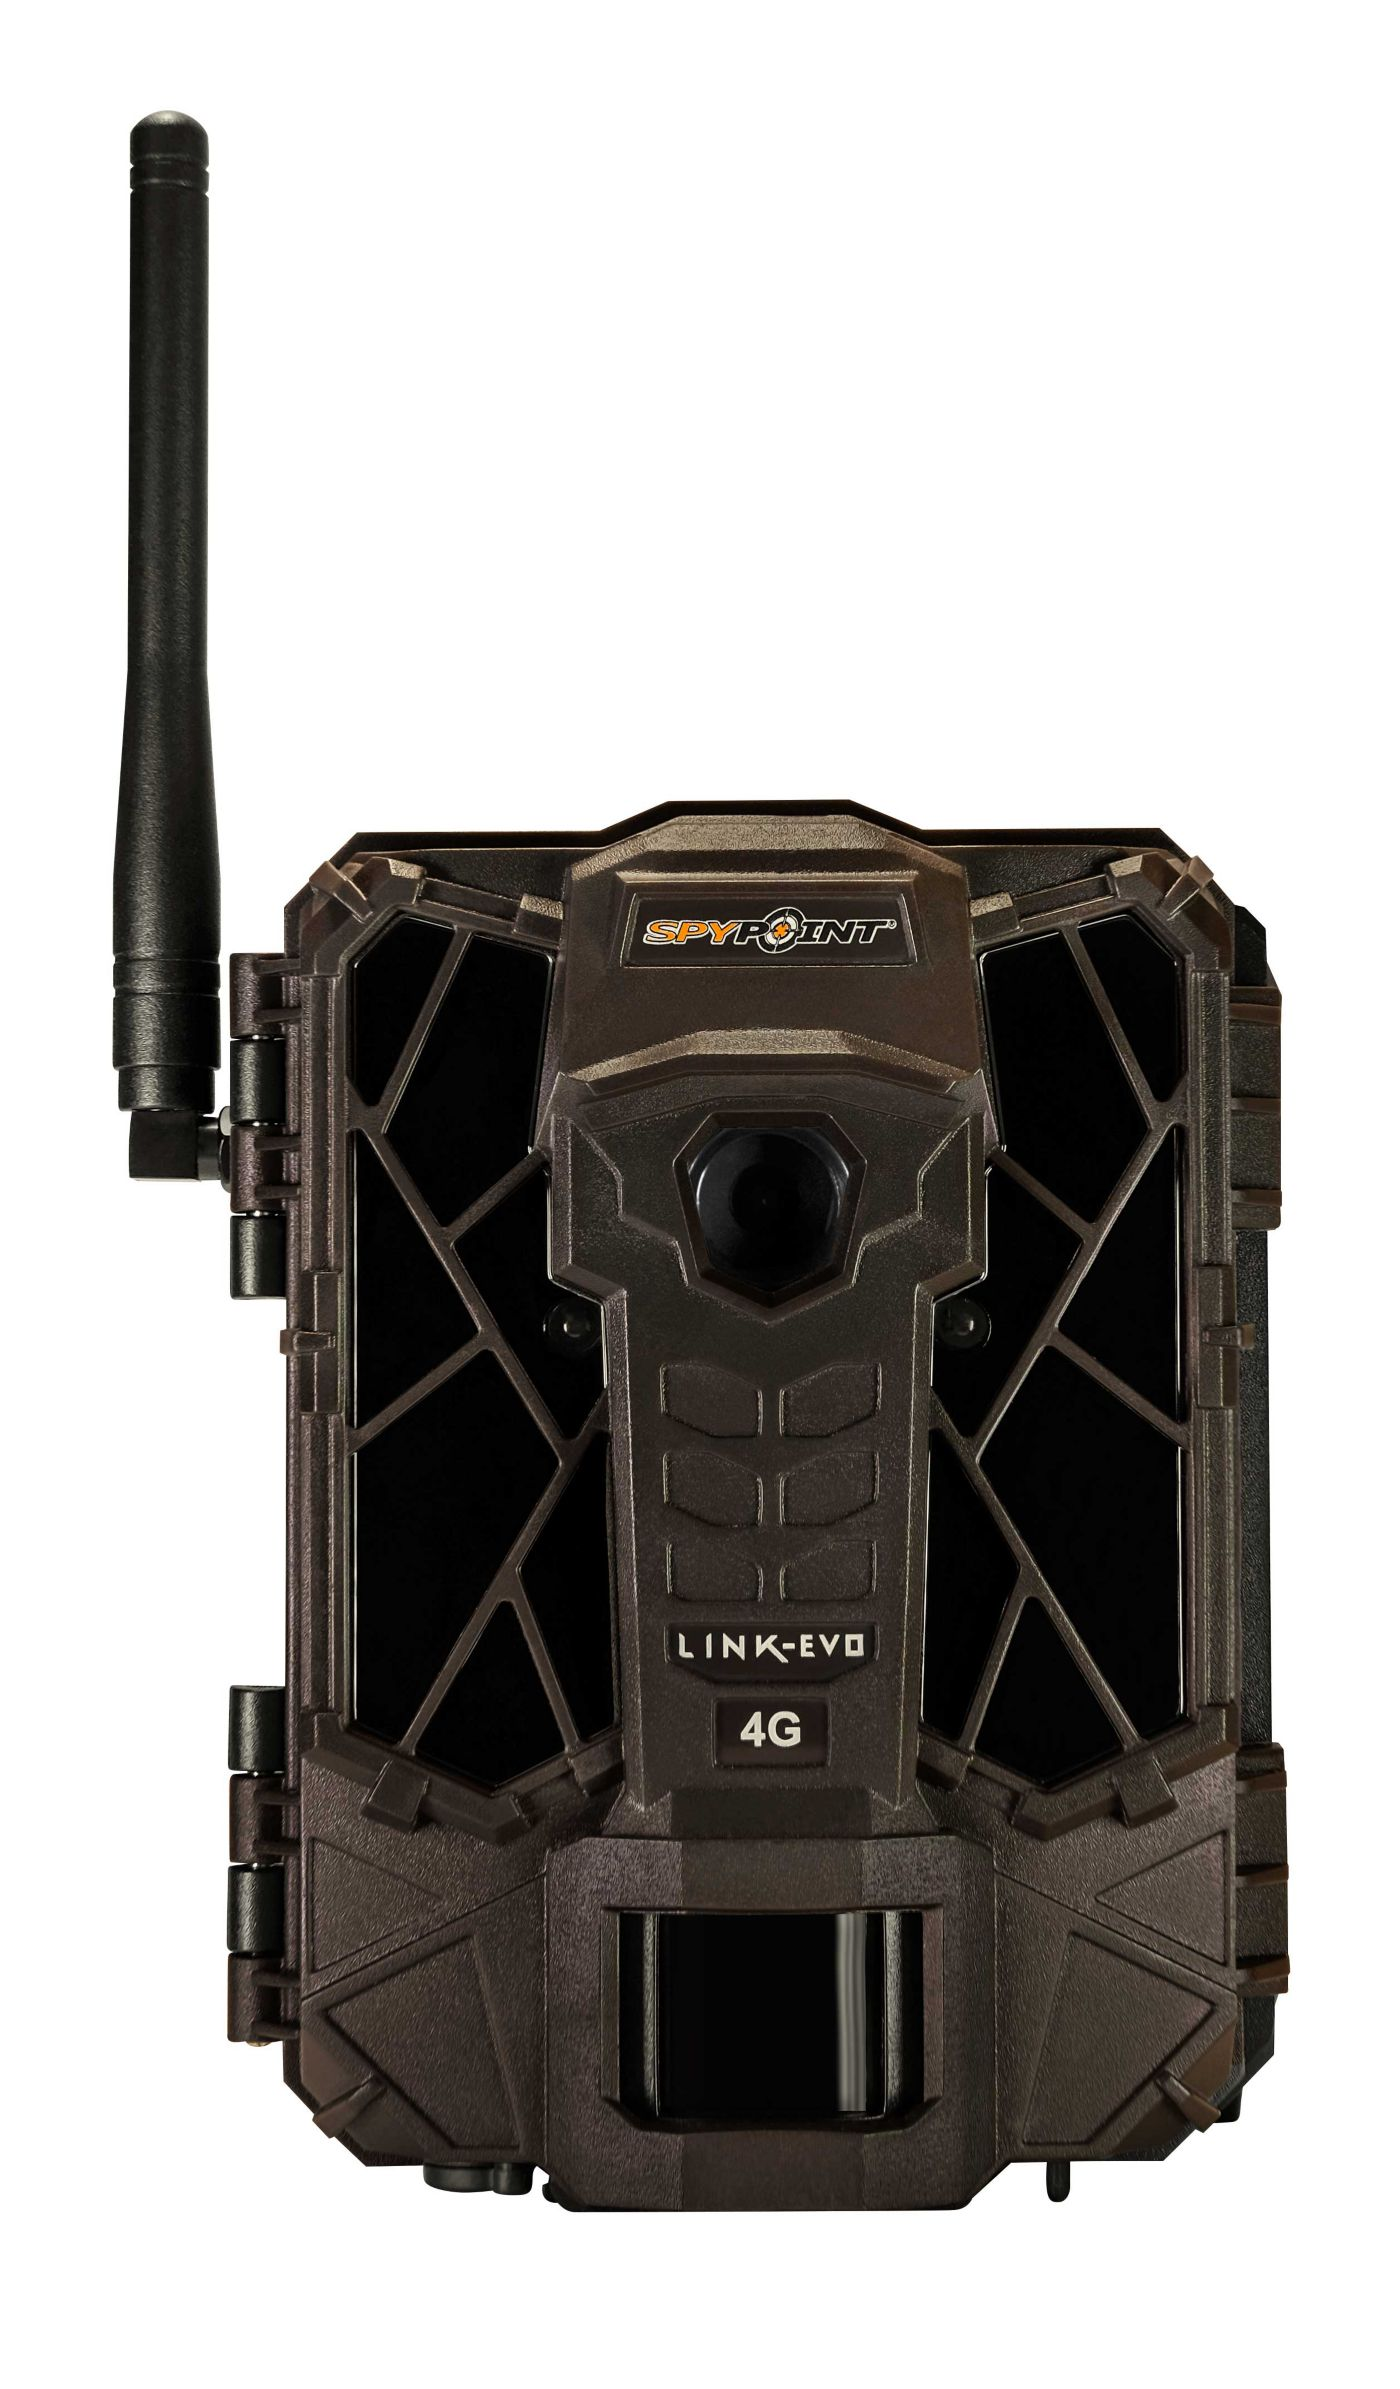 Spypoint LINK-EVO Cellular Trail Camera – 12MP